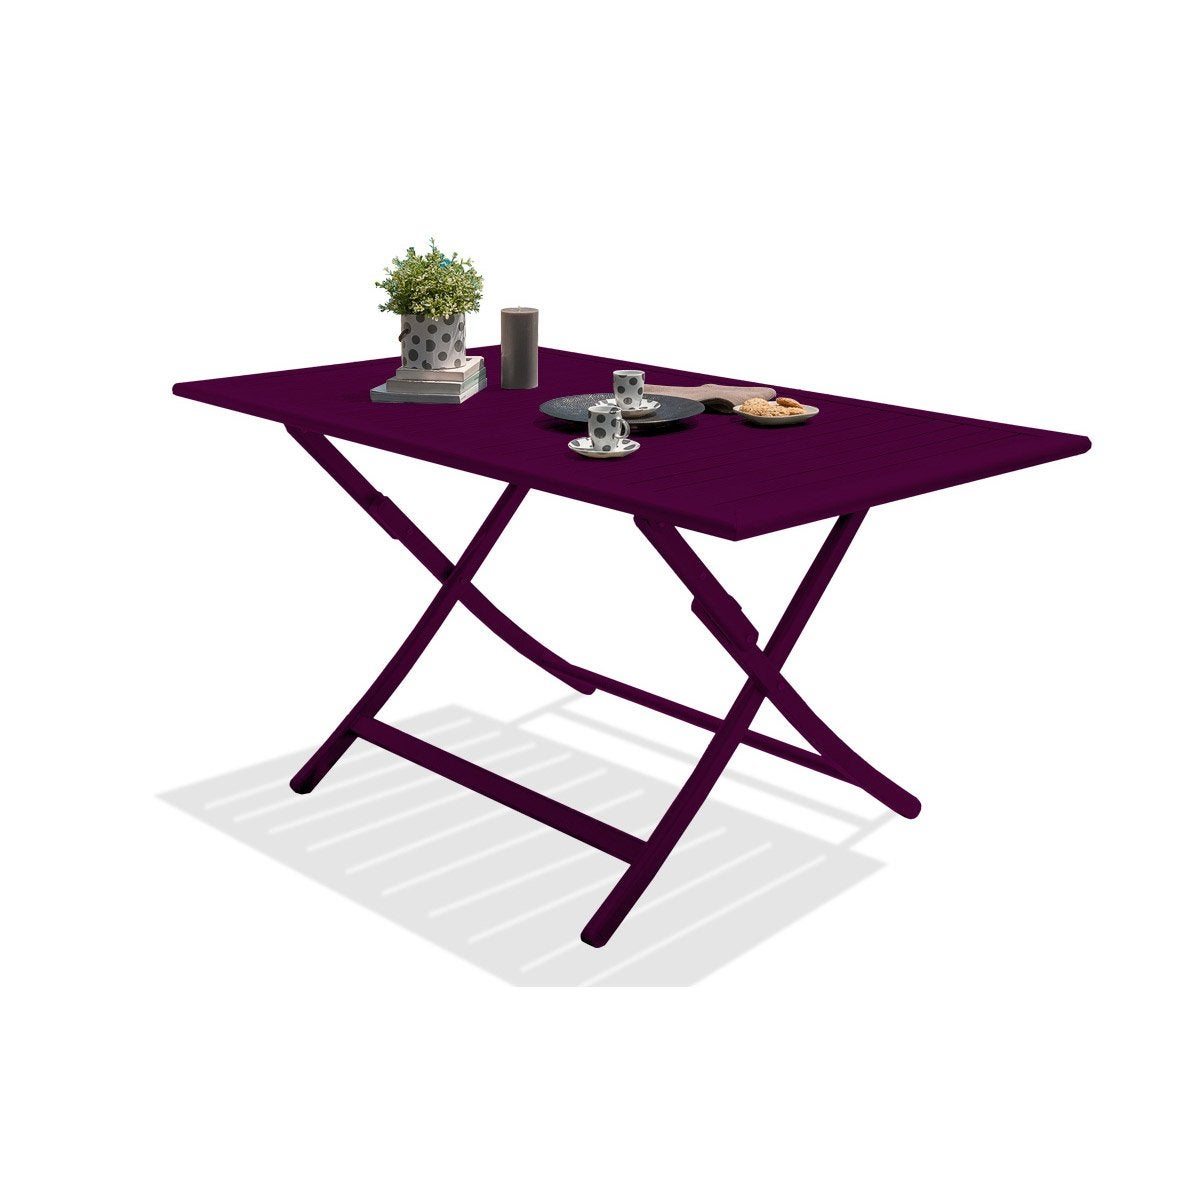 Table Jardin 10 Personnes Best Of Table De Jardin De Repas Marius Rectangulaire Aubergine 4 6 Of 33 Inspirant Table Jardin 10 Personnes